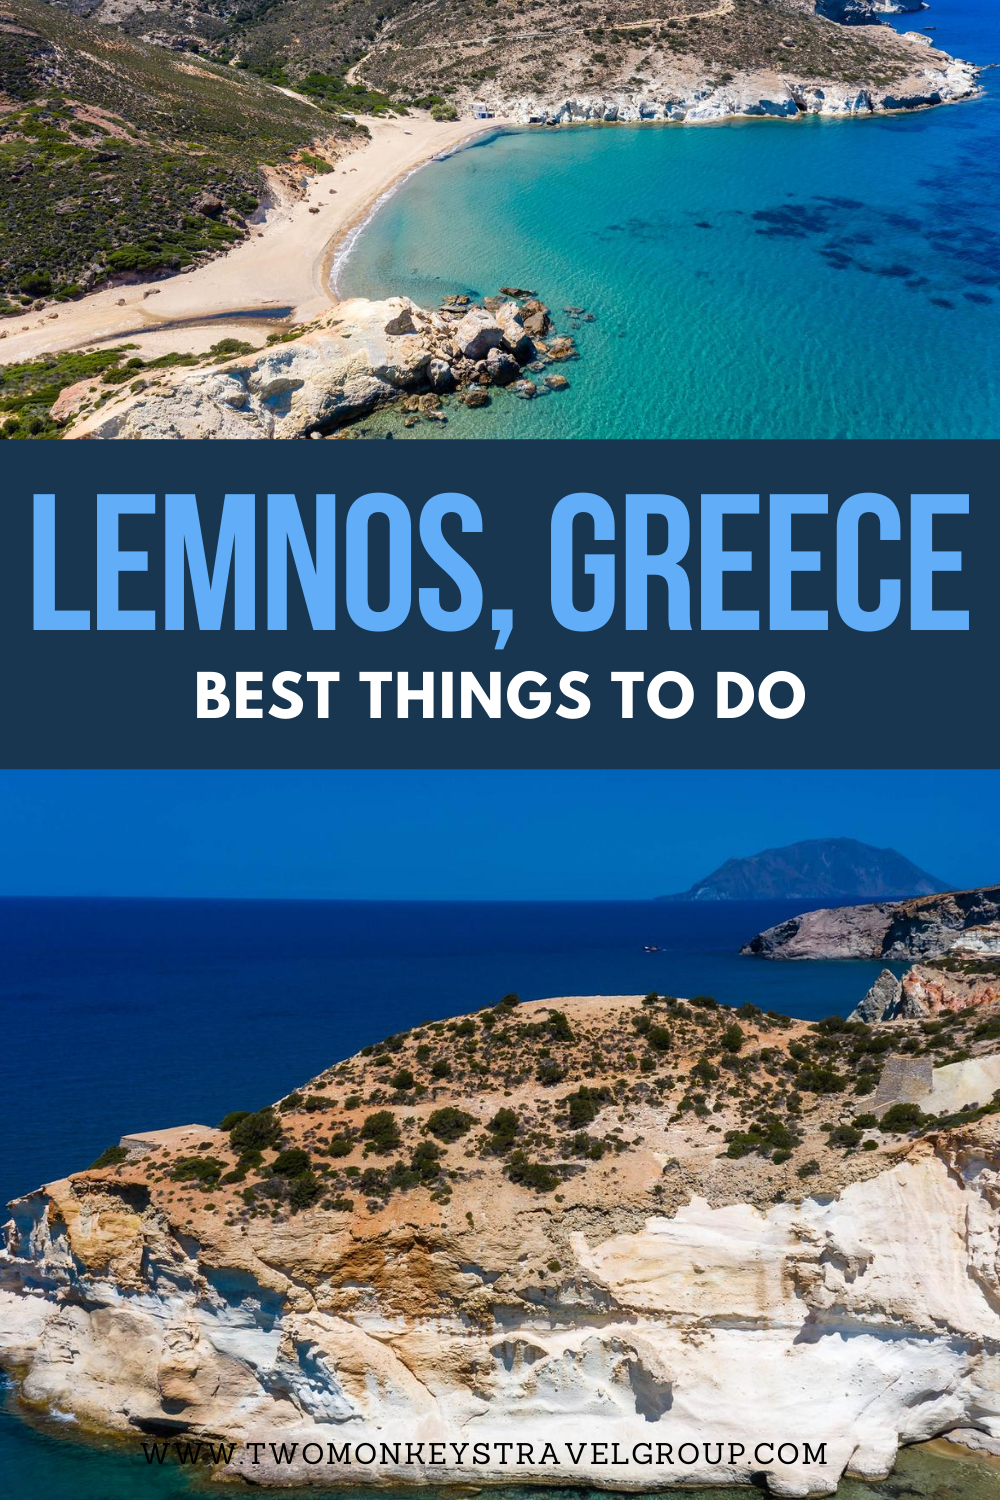 10 Best Things to do in Lemnos, Greece [with Suggested Tours]